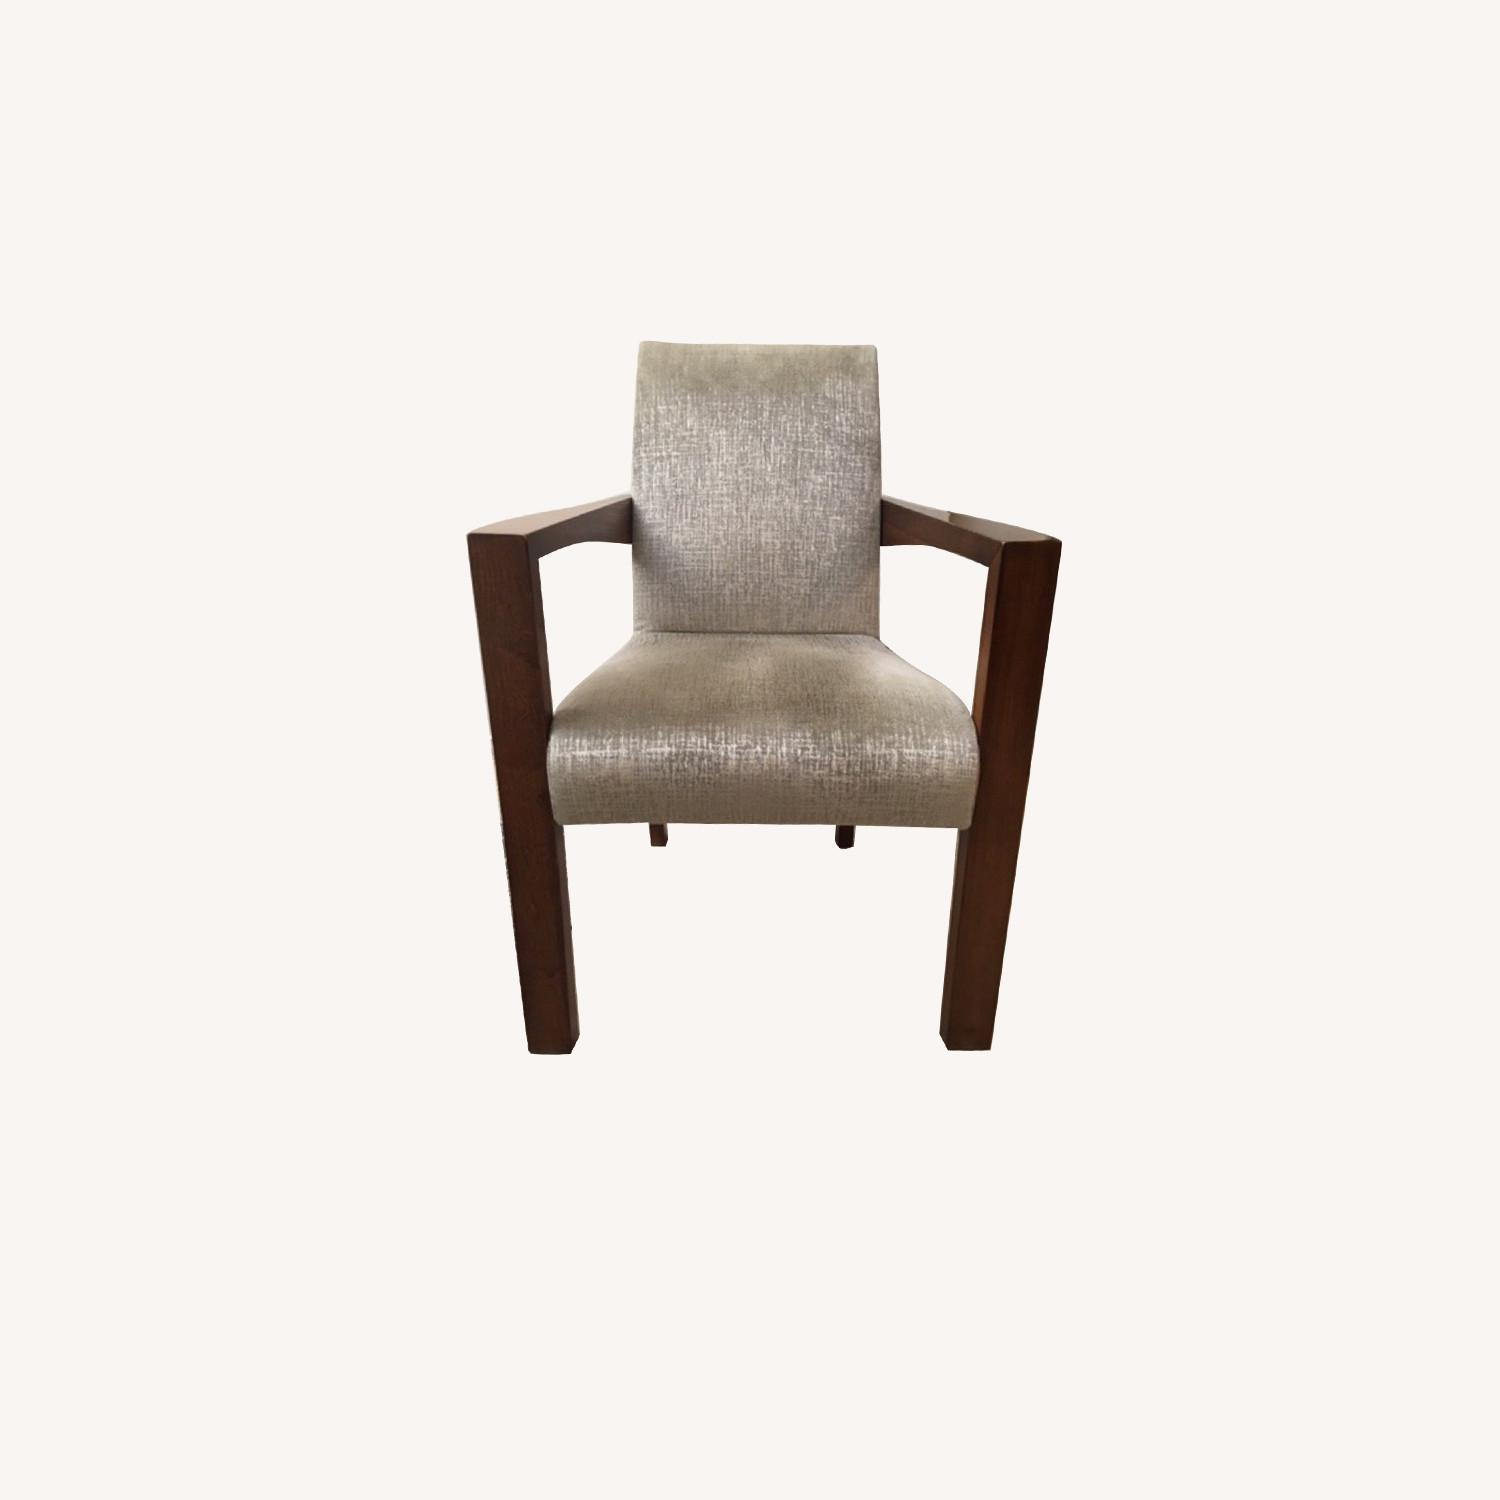 B&B Italia Upholstered Wood Dining Chairs